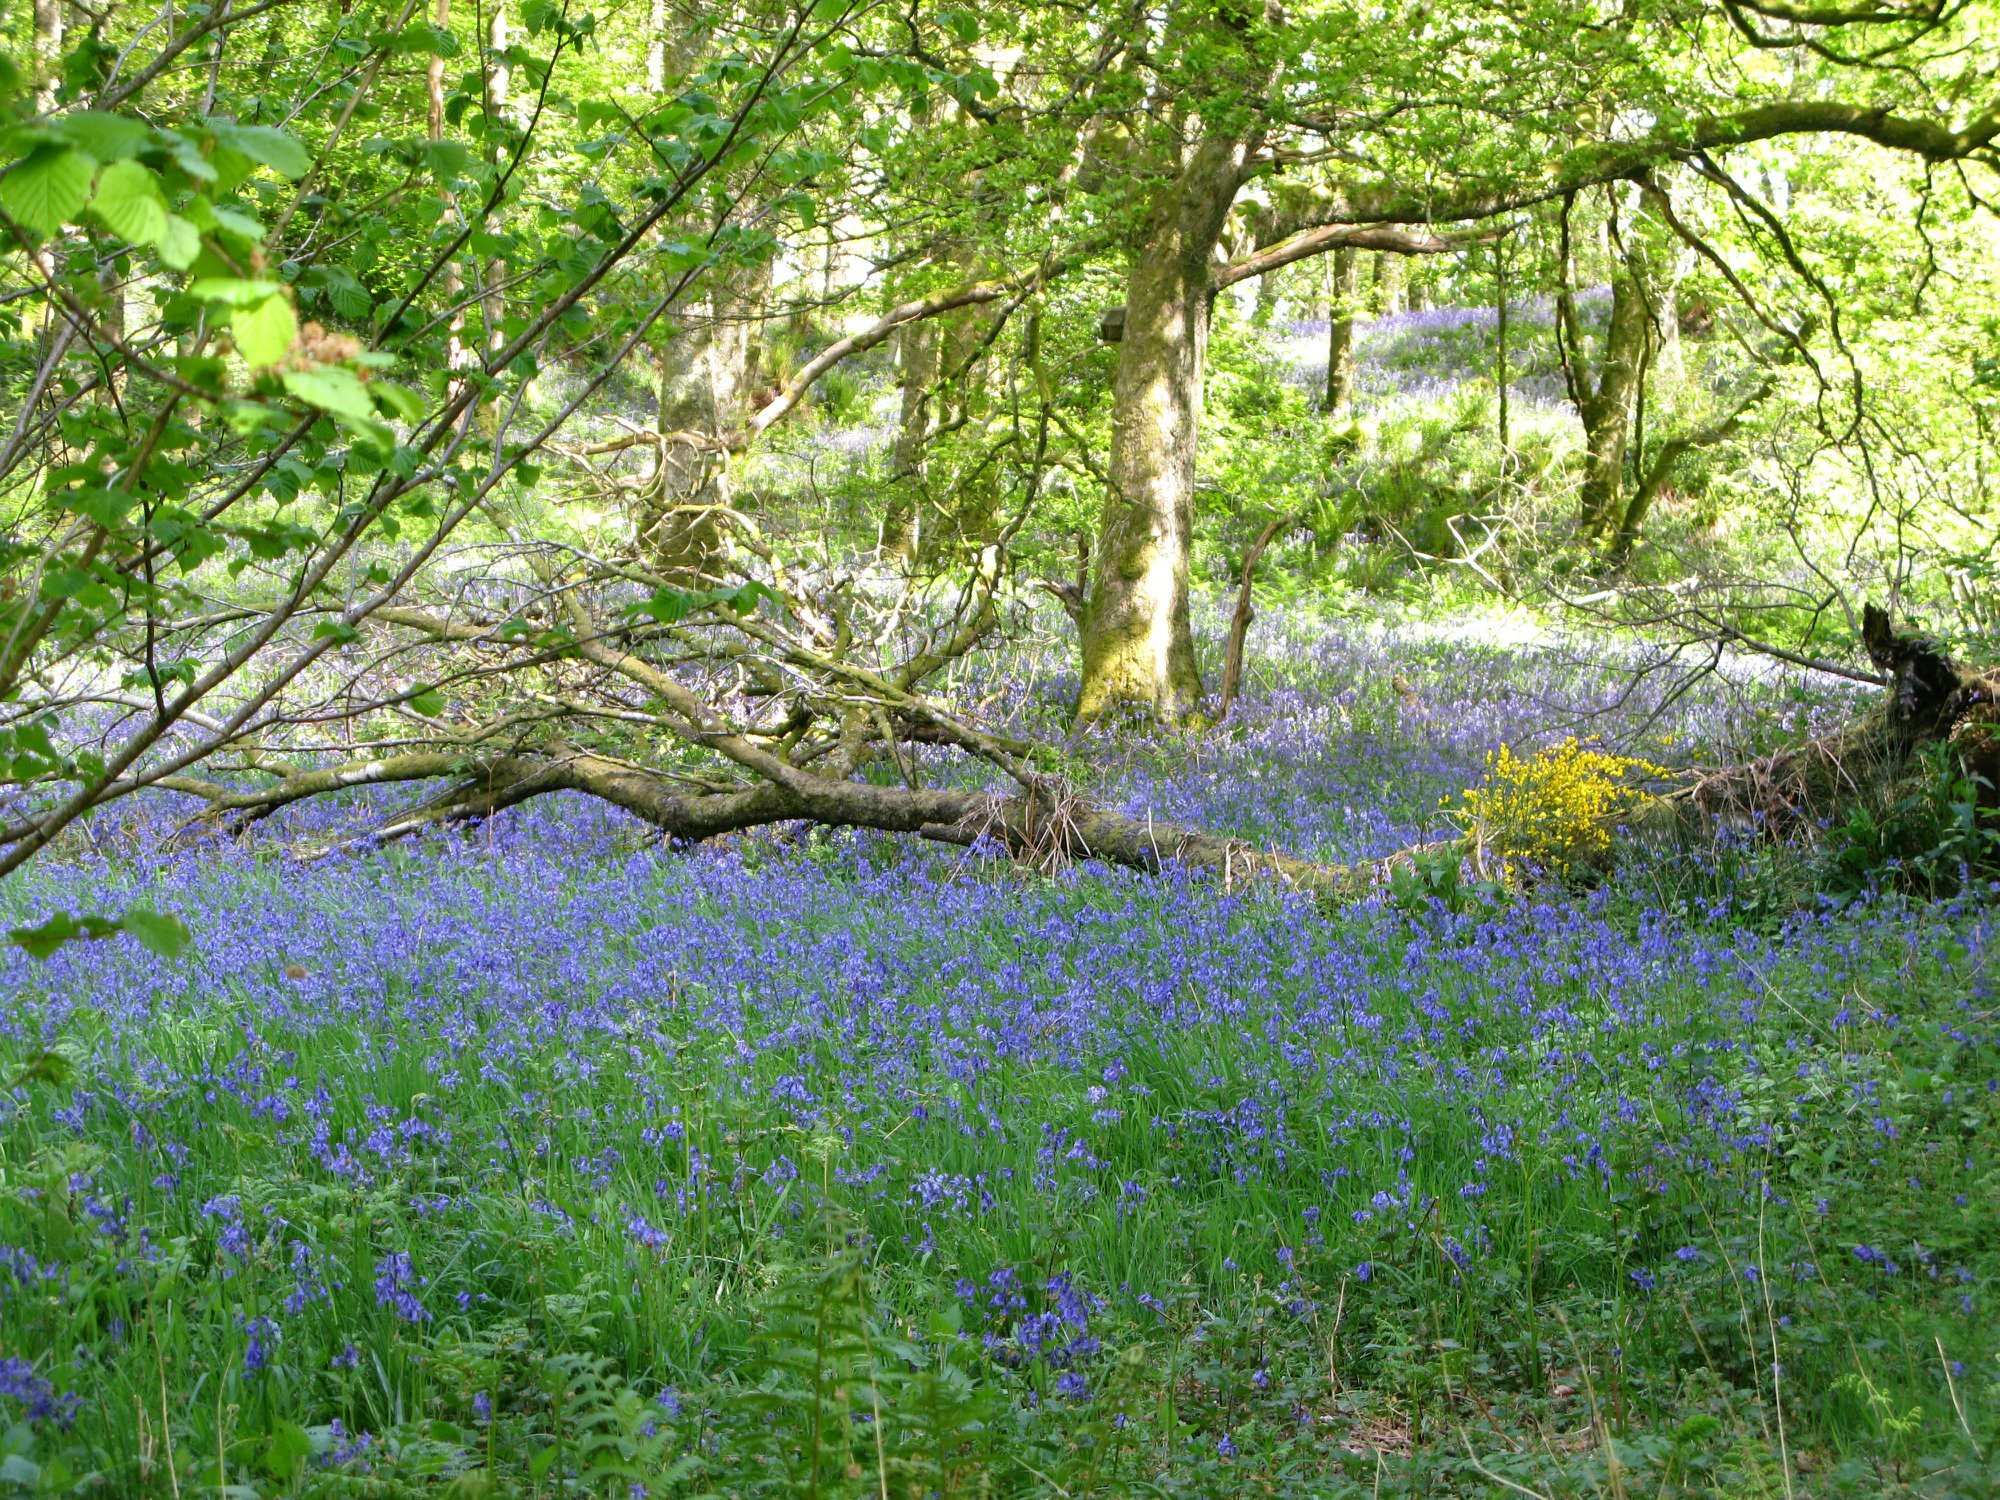 Bluebell time: May